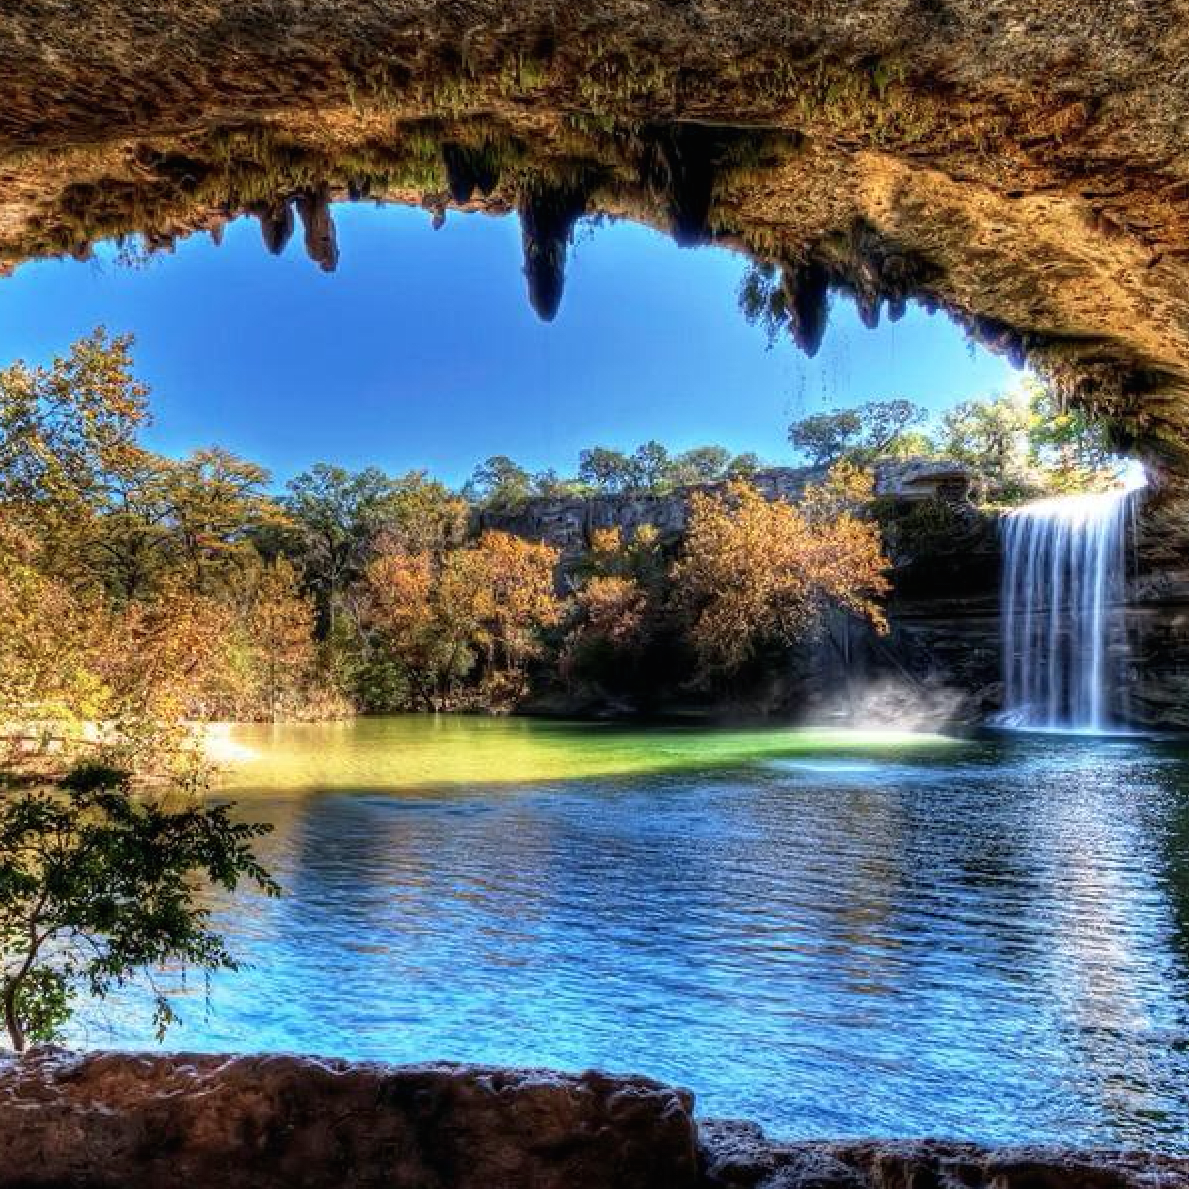 Hamilton Pool Texas: 12 Iconic Views That Will Make You Fall In Love With